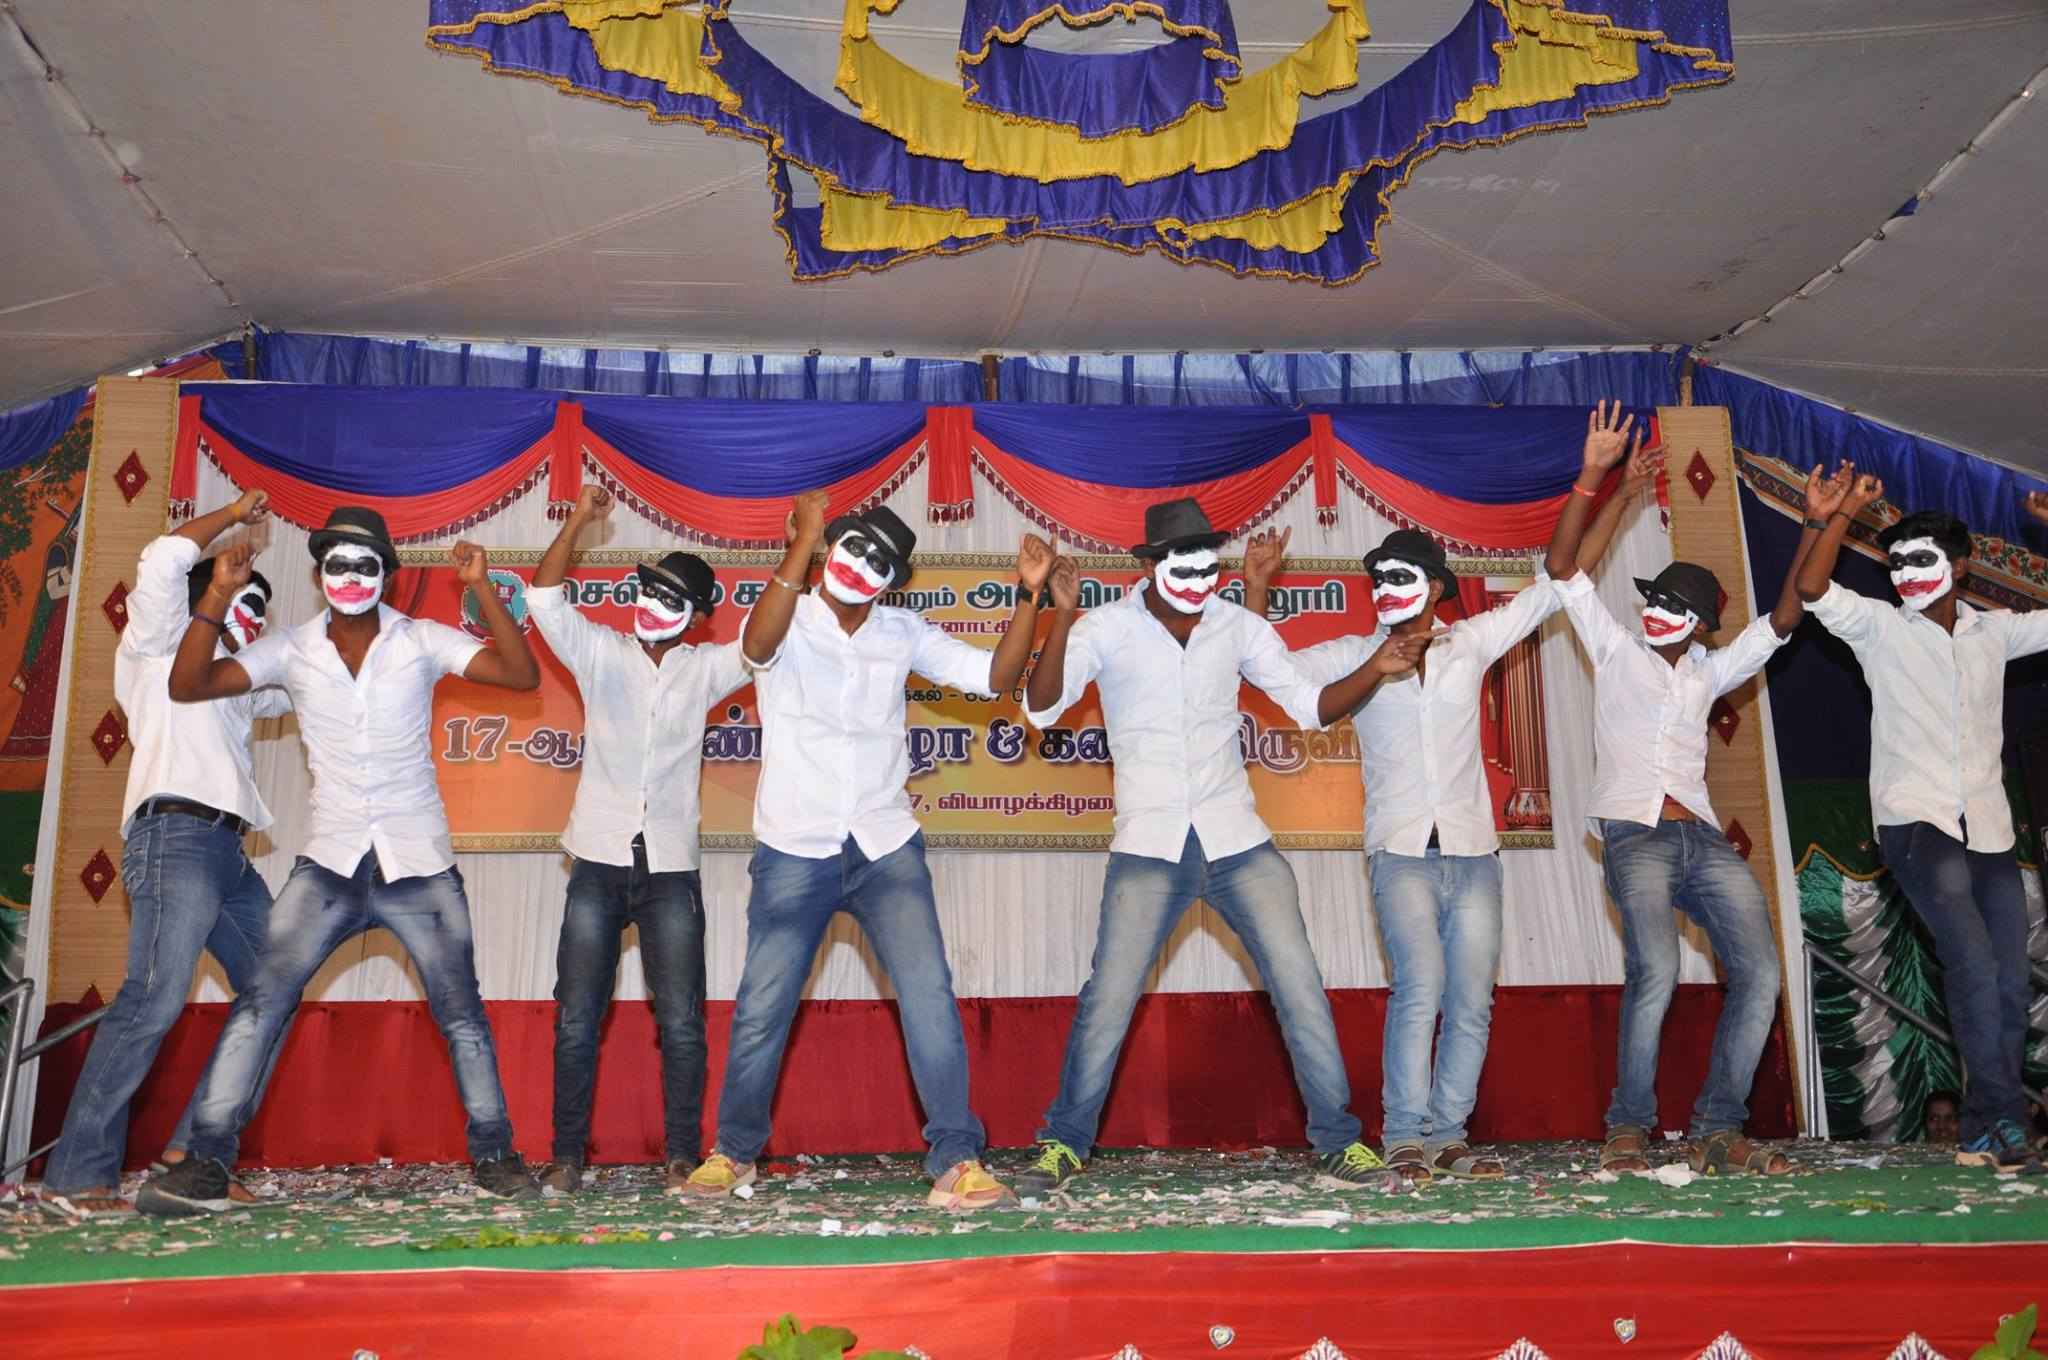 17th Annual Day Celebrations.